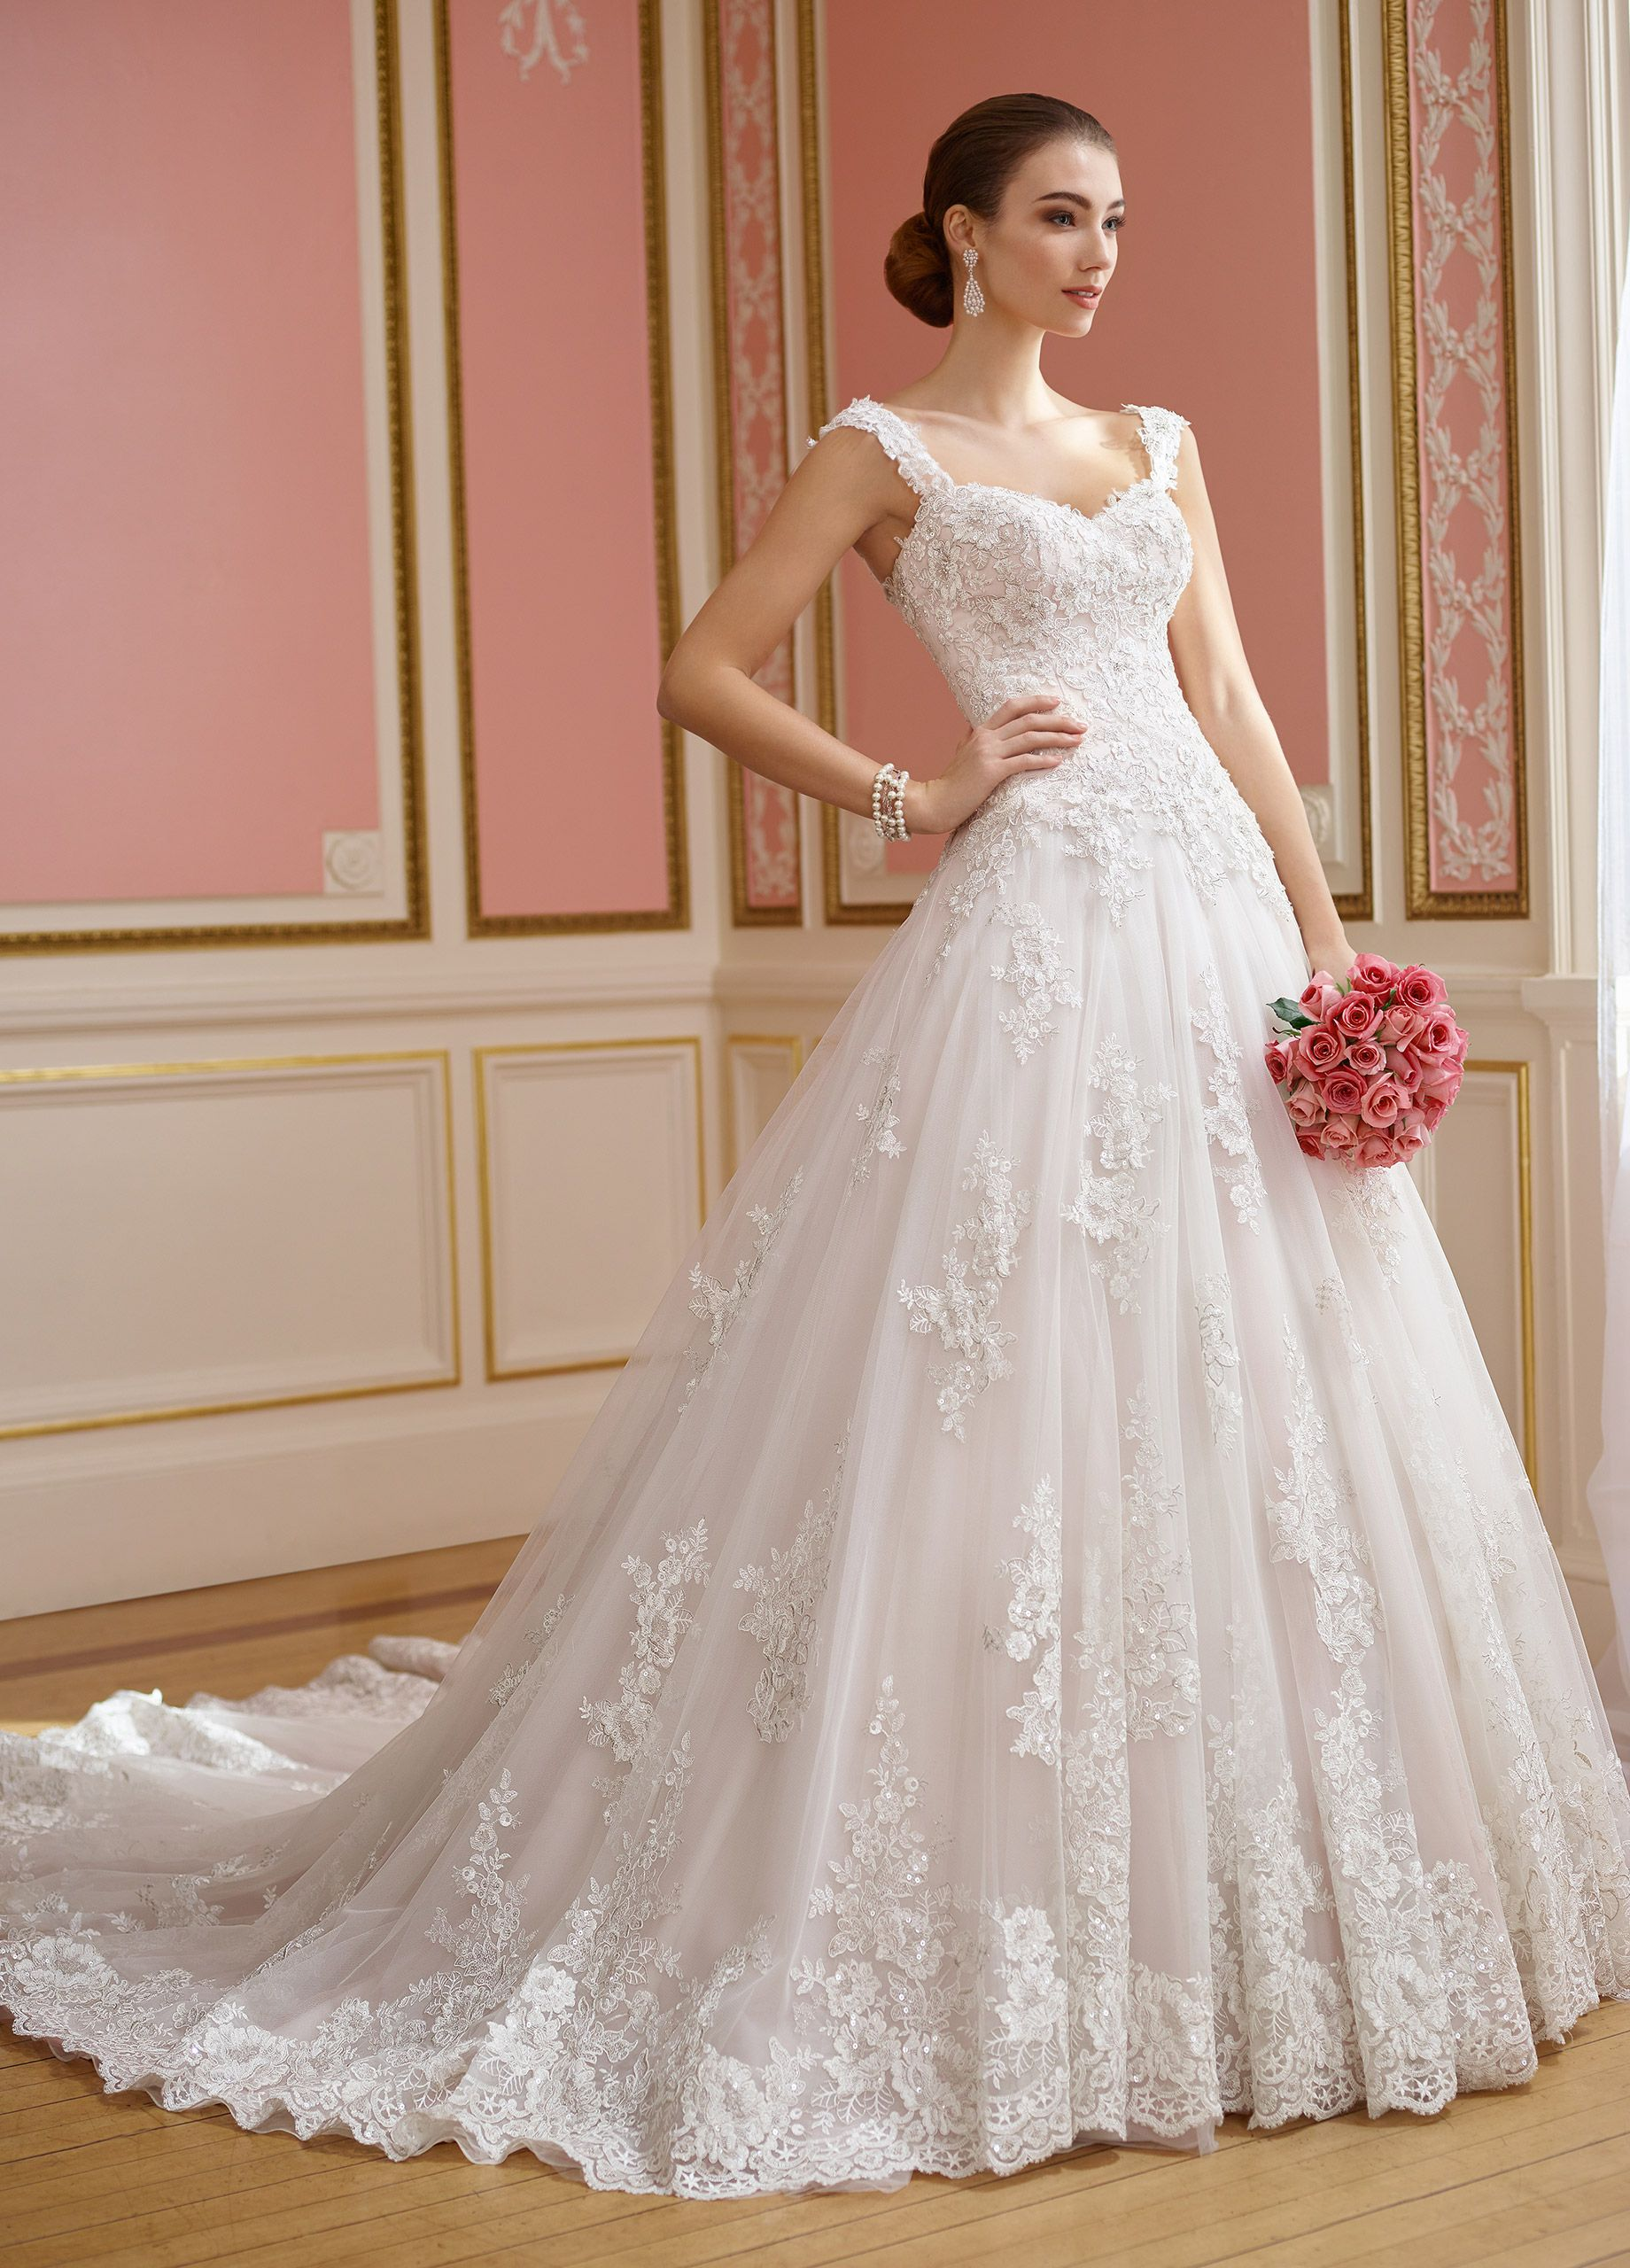 Lace u tulle ball gown wedding dress with sleeves nellie